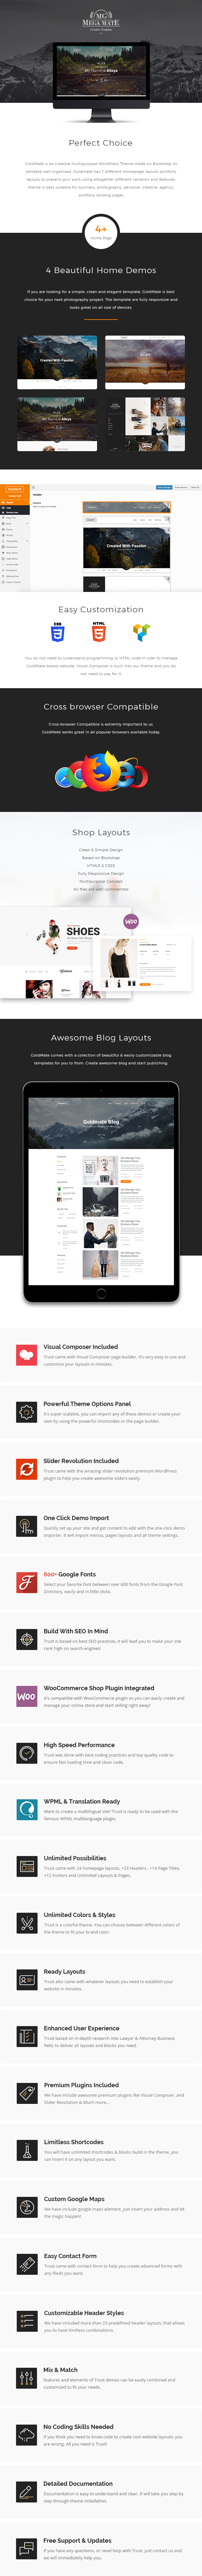 MegaMate – Creative Multipurpose WordPress Theme (Creative)